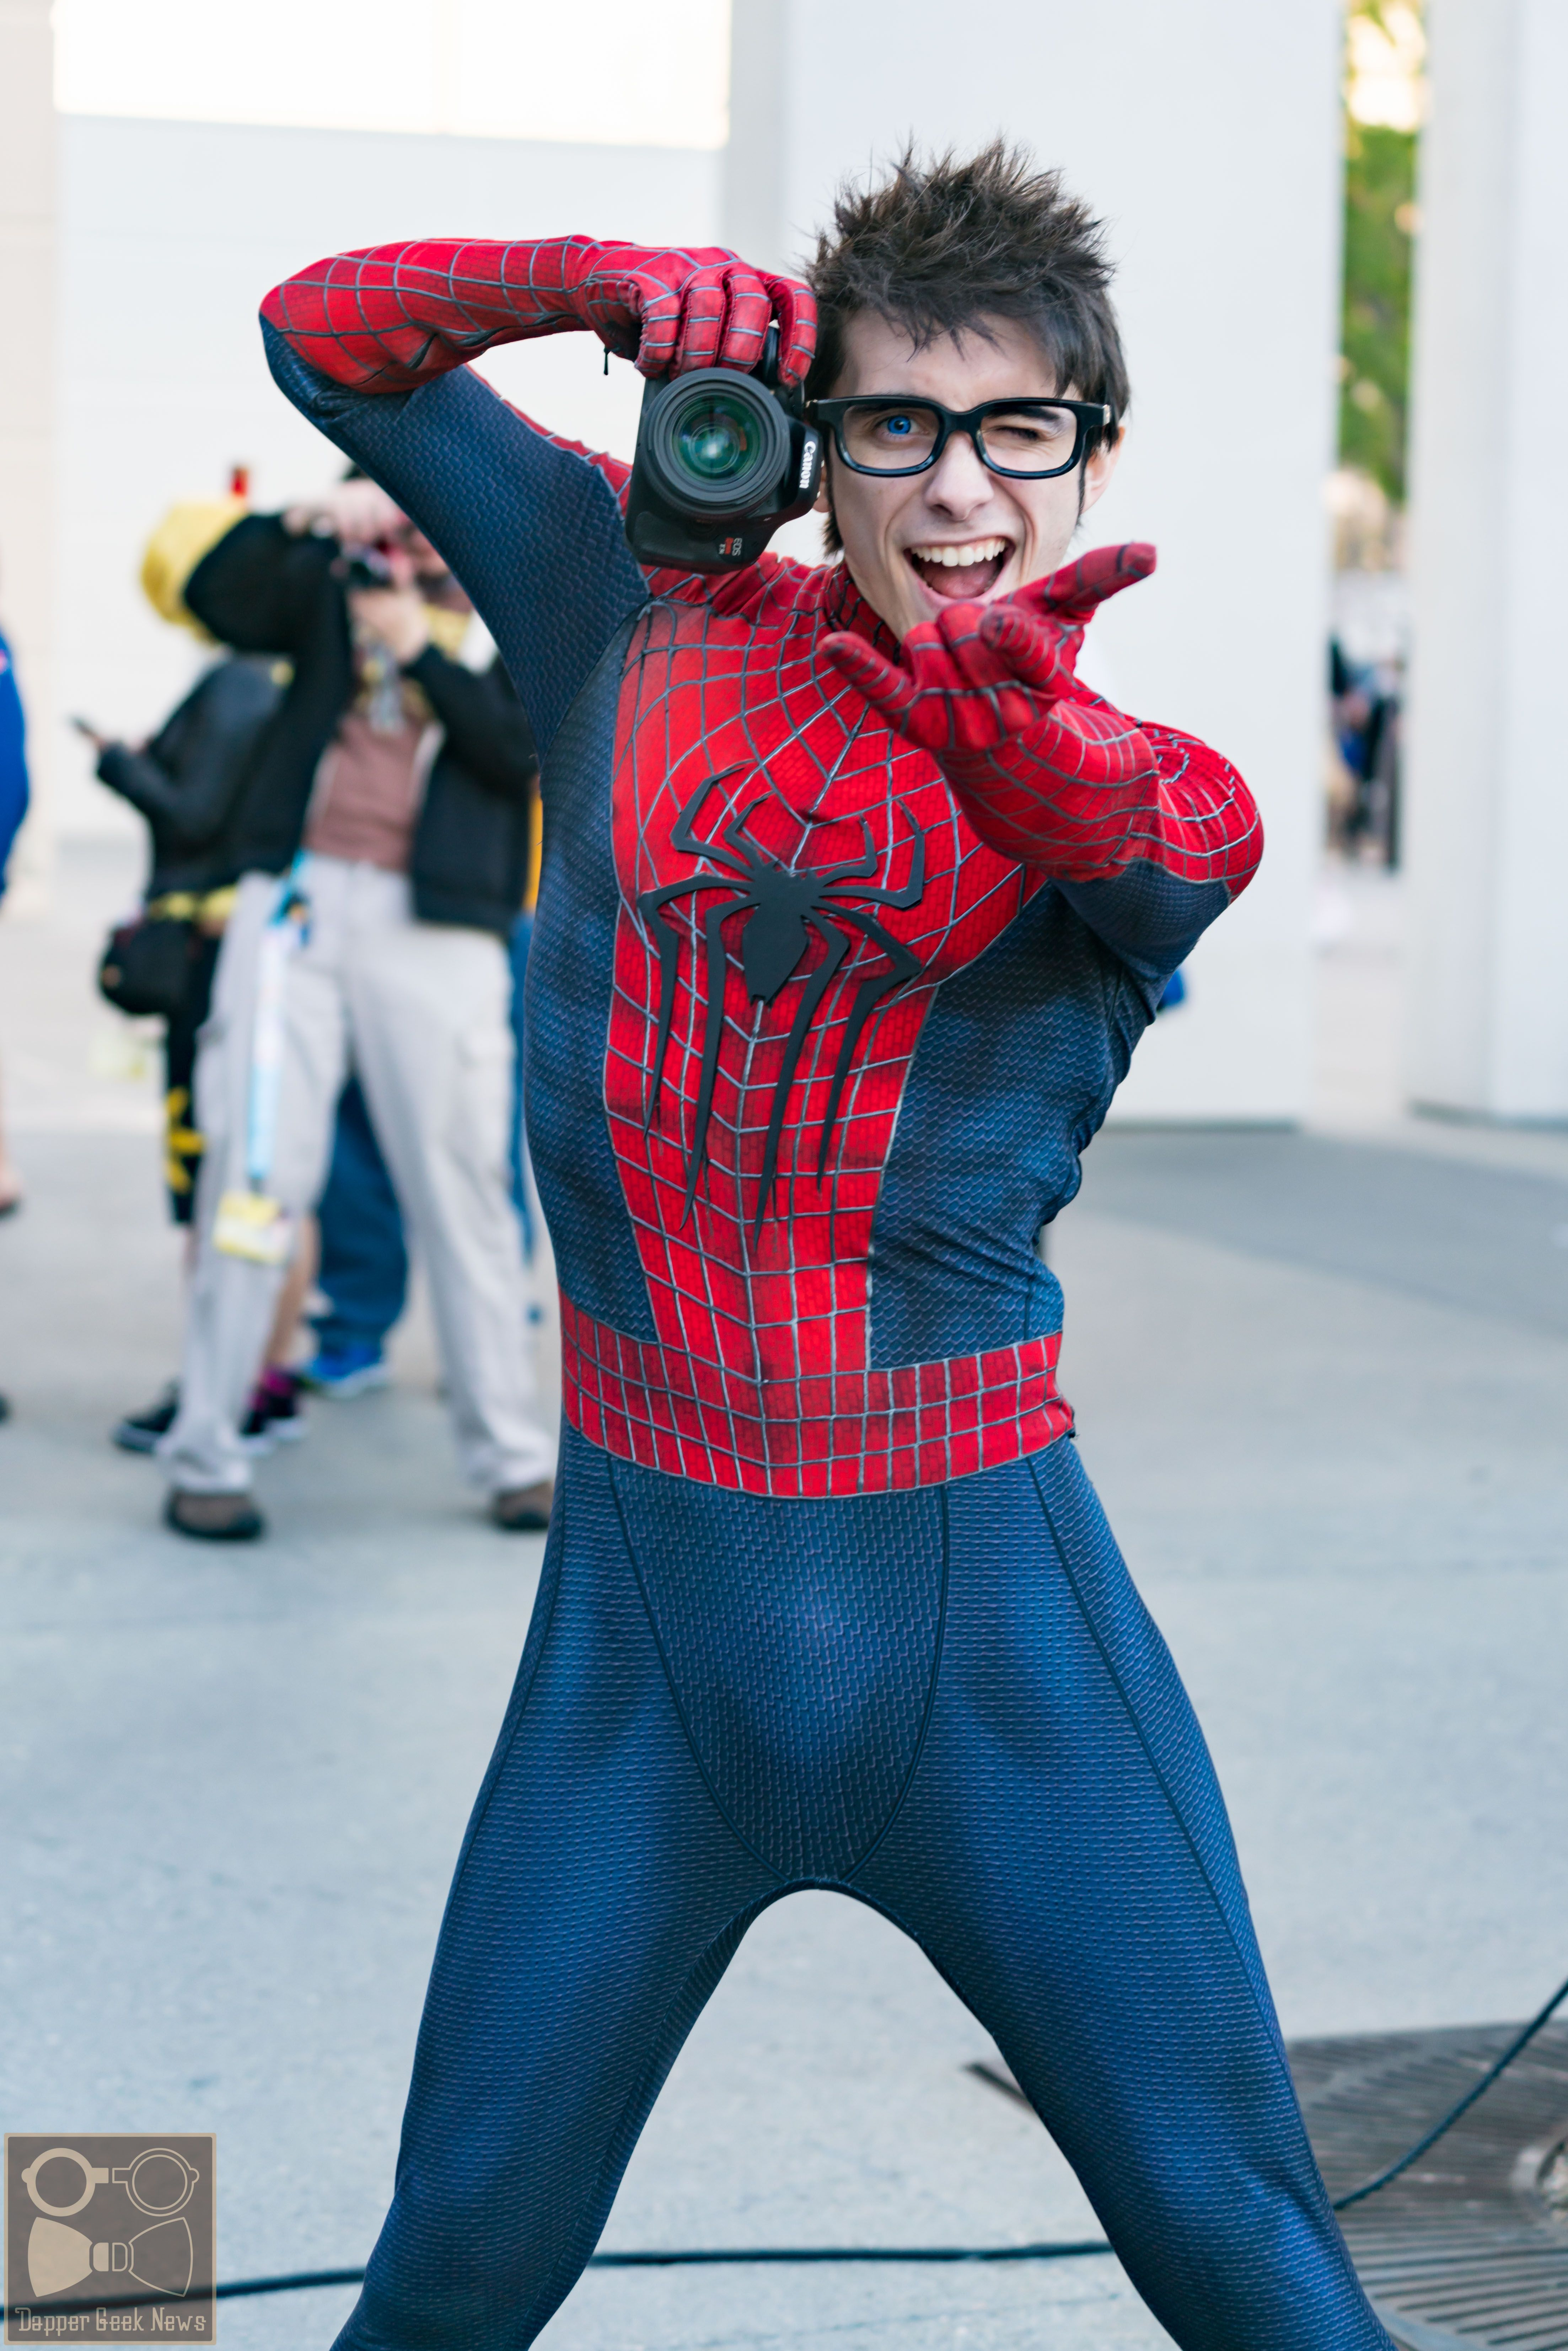 Chris villain cosplaying as spiderman during anime los